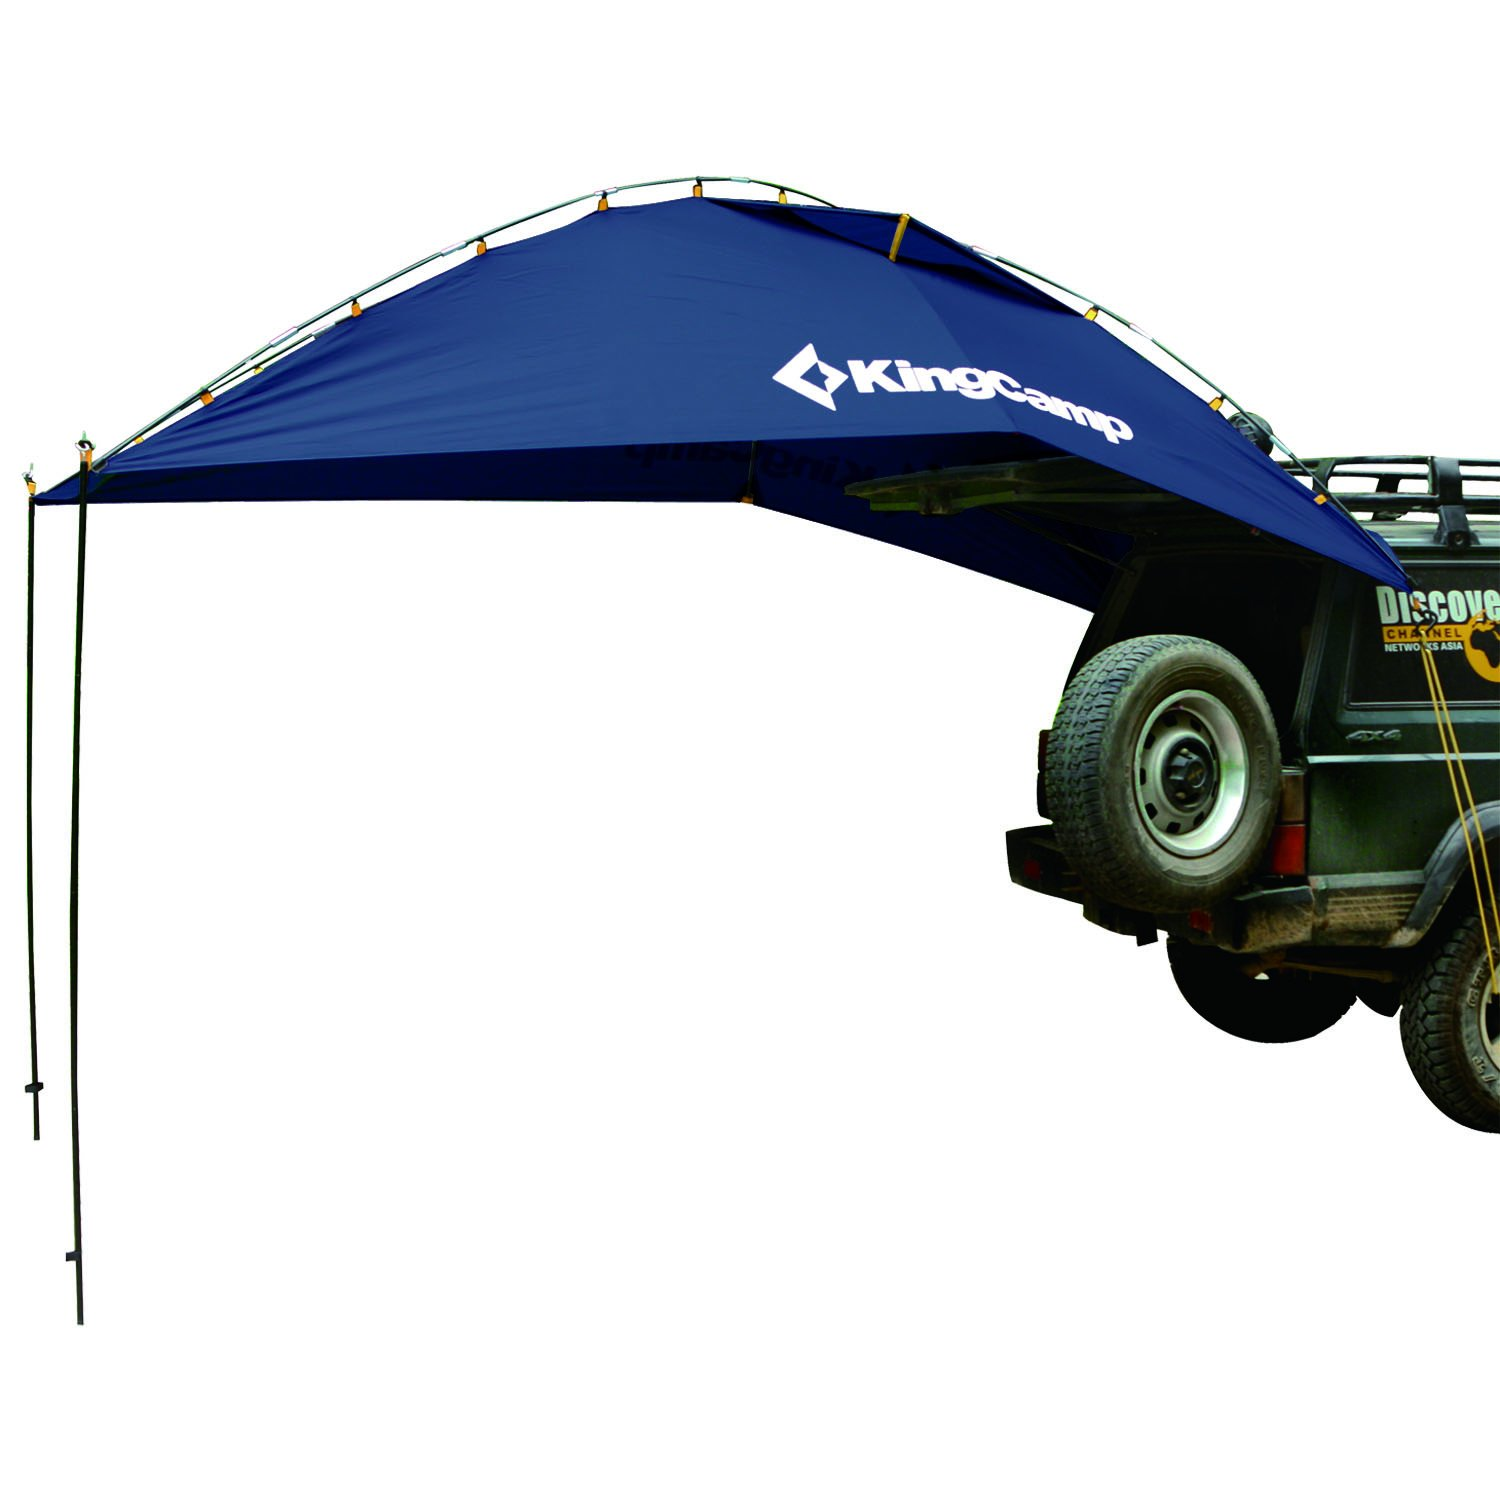 KingCamp Awning Sun Shelter Auto Canopy Camper Trailer Tent Roof Top for Beach, SUV, MPV, Hatchback, Minivan, Sedan, Camping, Outdoor, Anti-uv Tents, Waterproof, Portable (Blue) by KingCamp